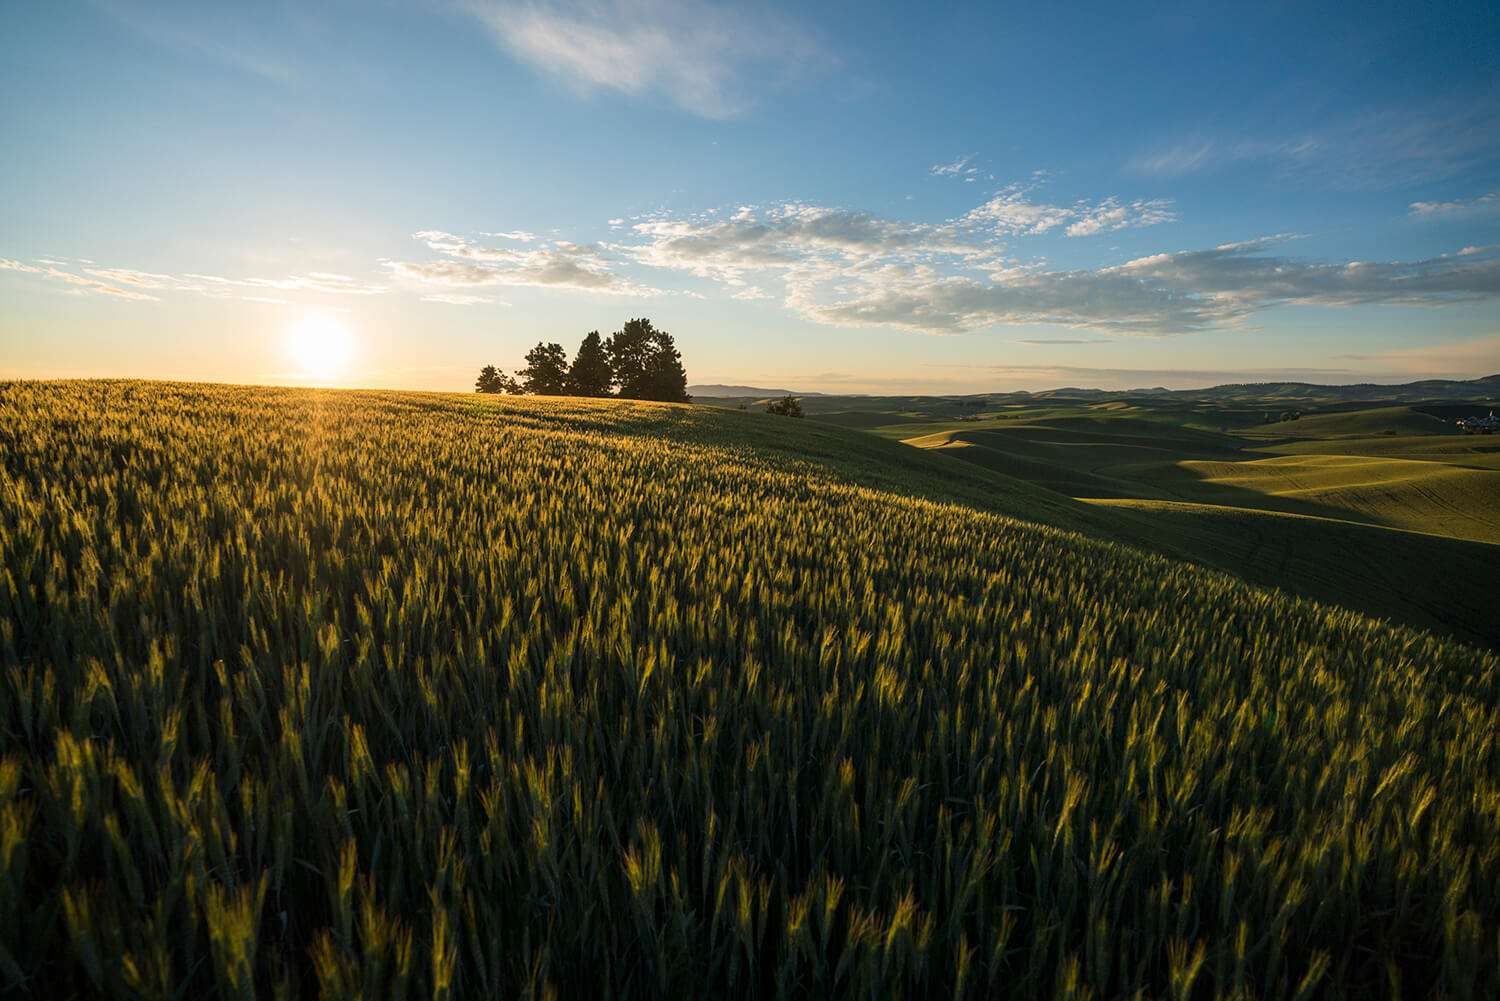 sun setting over Moscow, Idaho's green rolling hills landscape with trees in the background